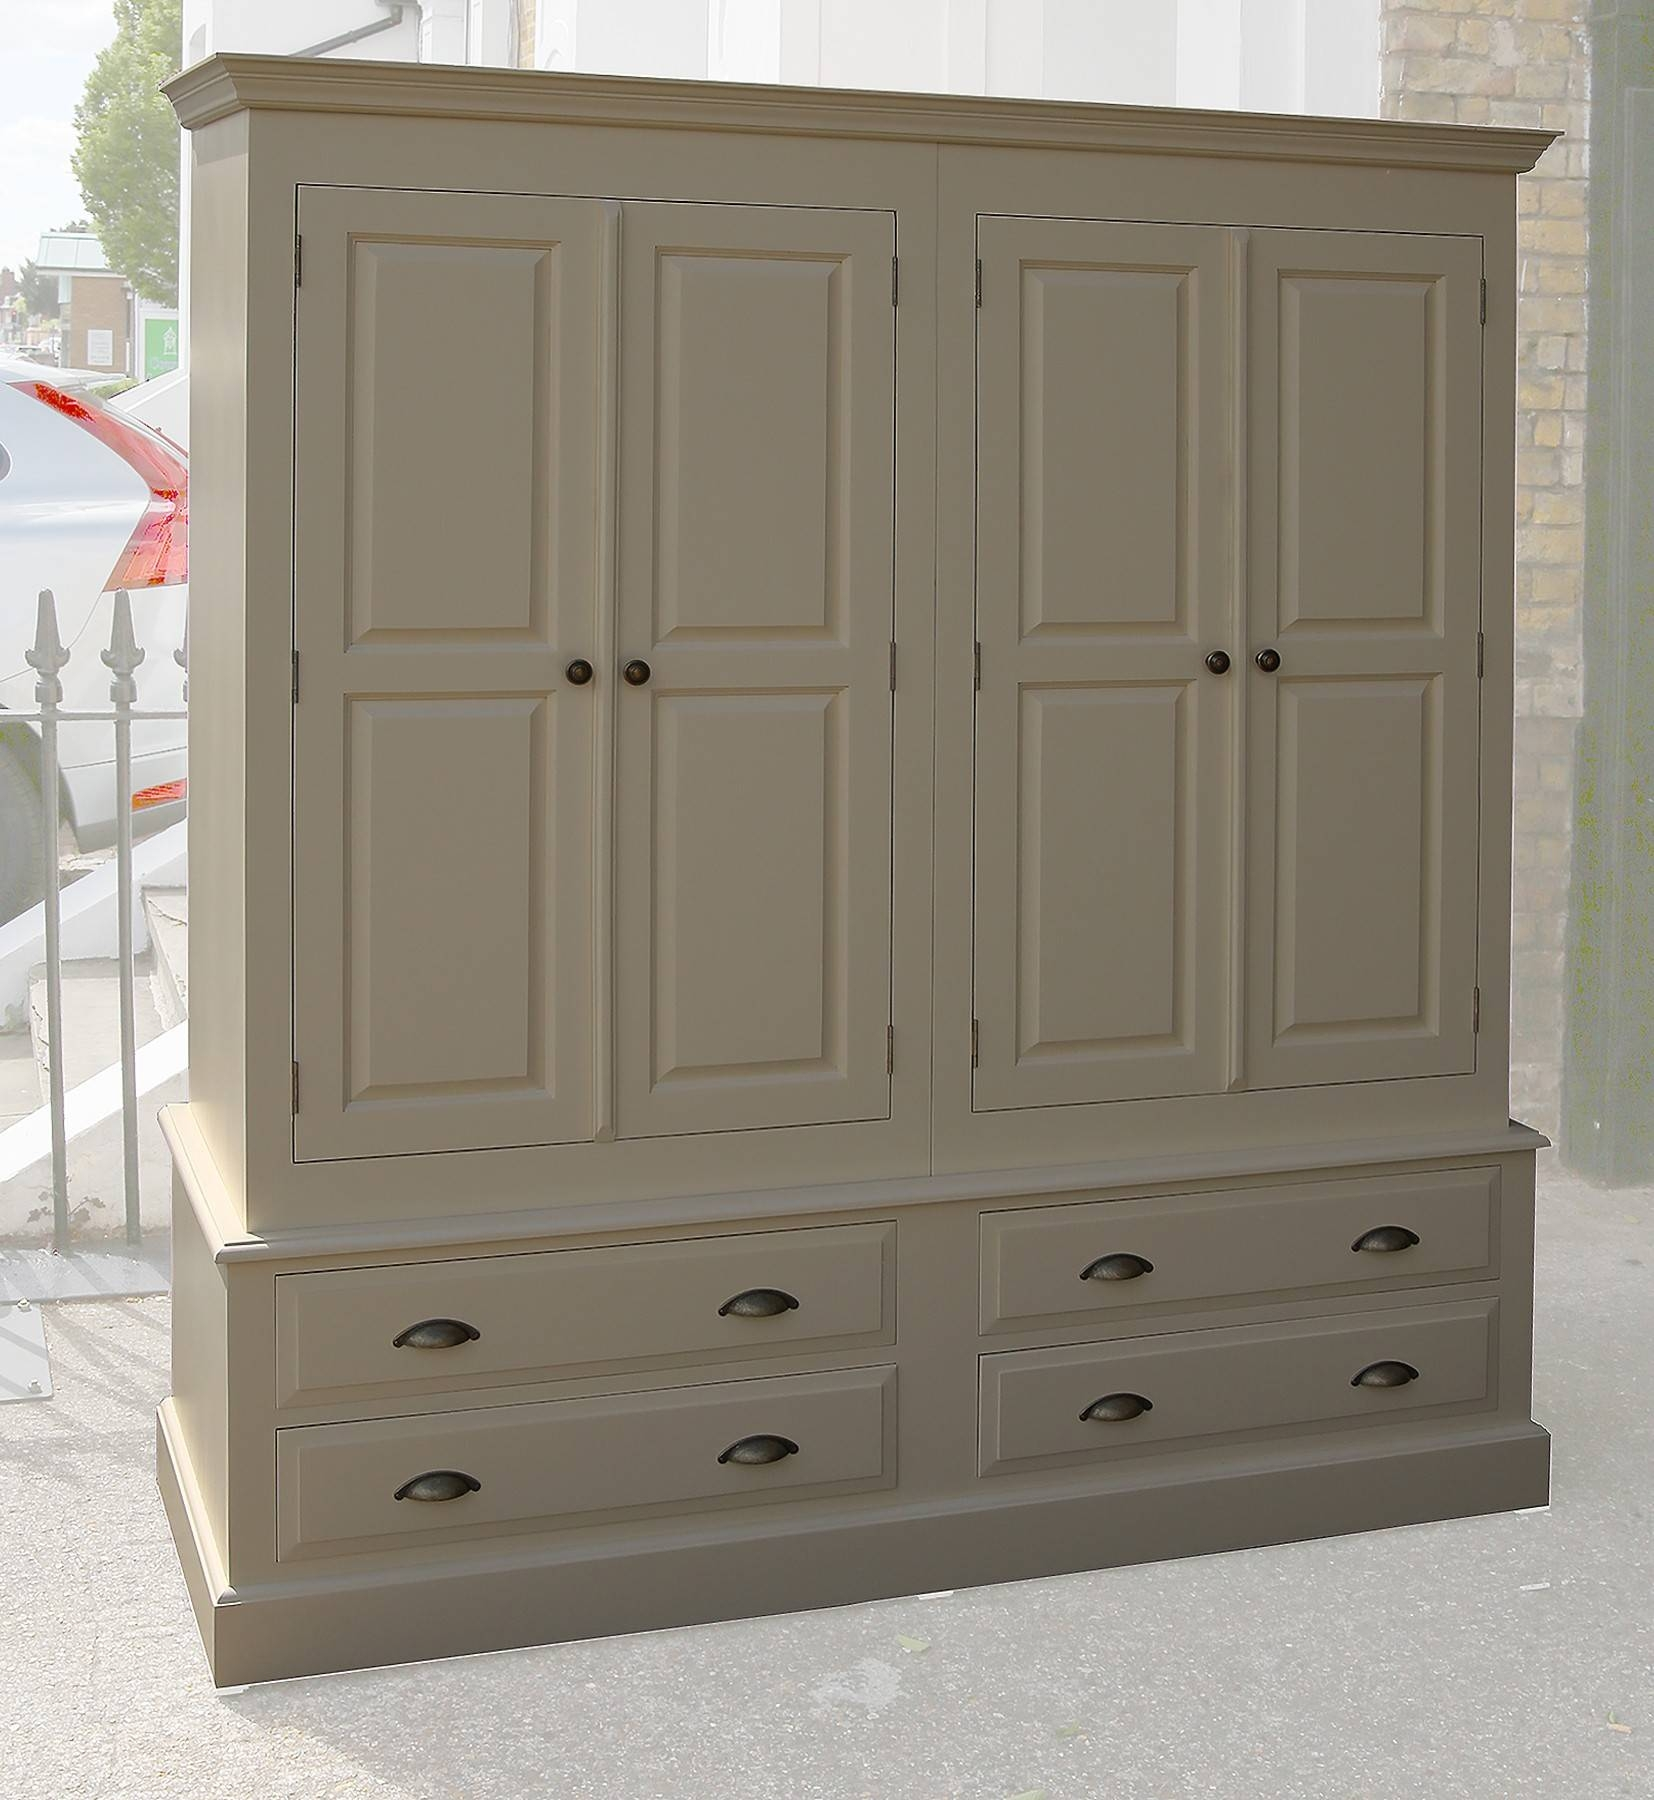 Solid Pine Farrow And Ball Painted 4 Door 4 Drawer Wardrobe In All regarding Painted Wardrobes (Image 13 of 15)